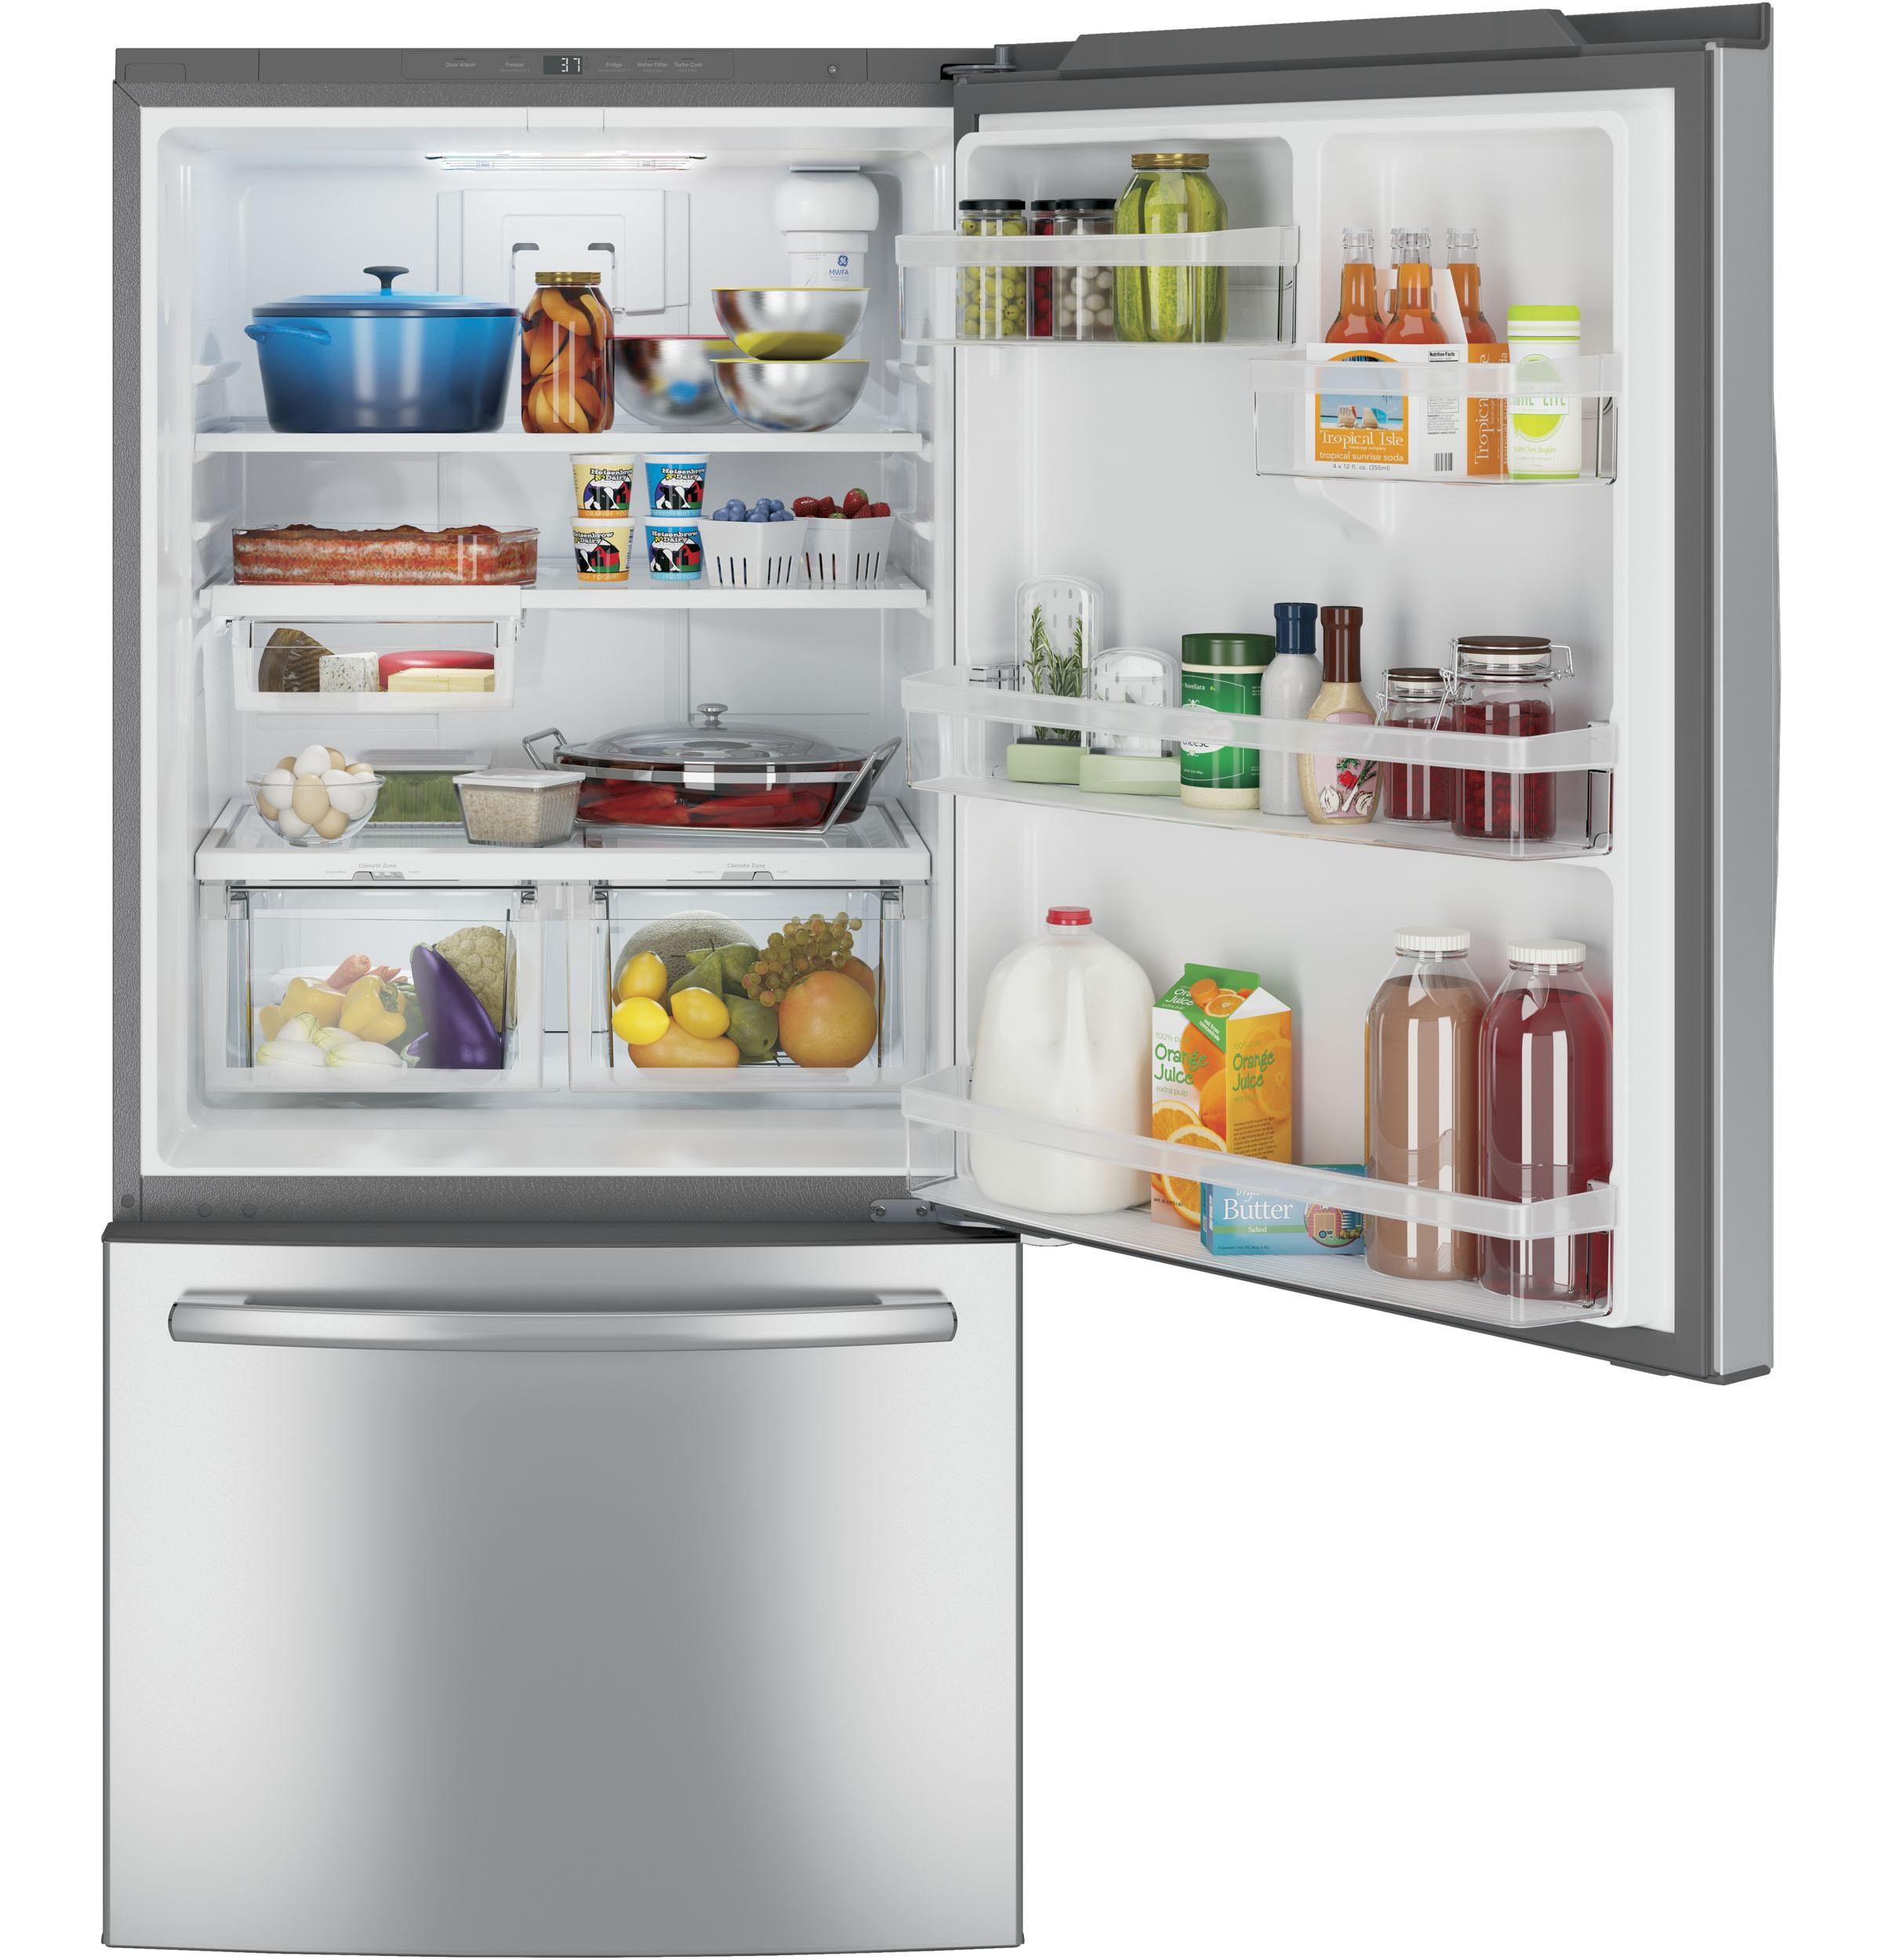 paykel freezers drawer bottom why french mount refrigerators freezer kitchen fisher rgb feature door choose us fridge a